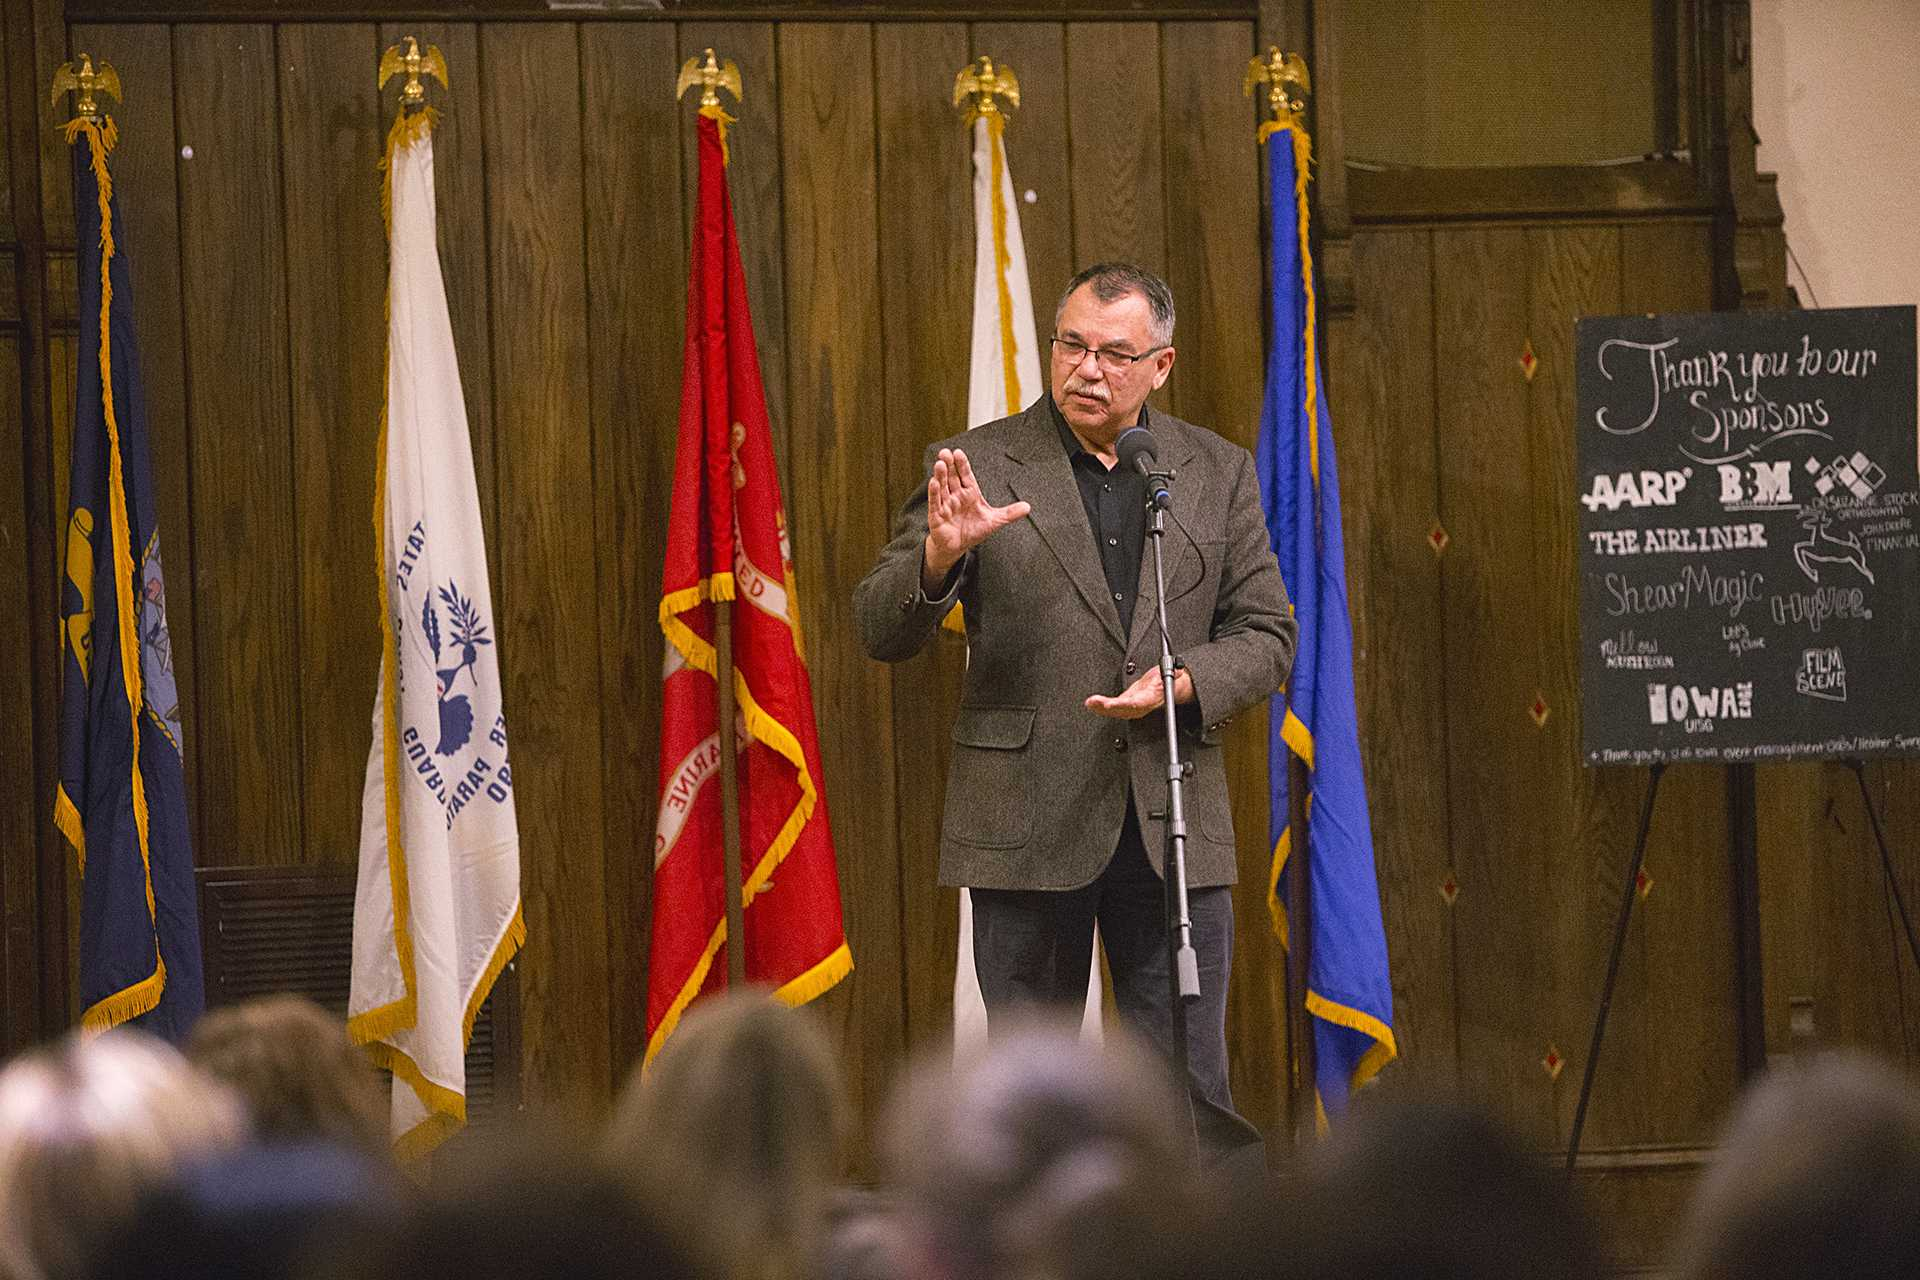 Veterans share experiences at IowaWatch event